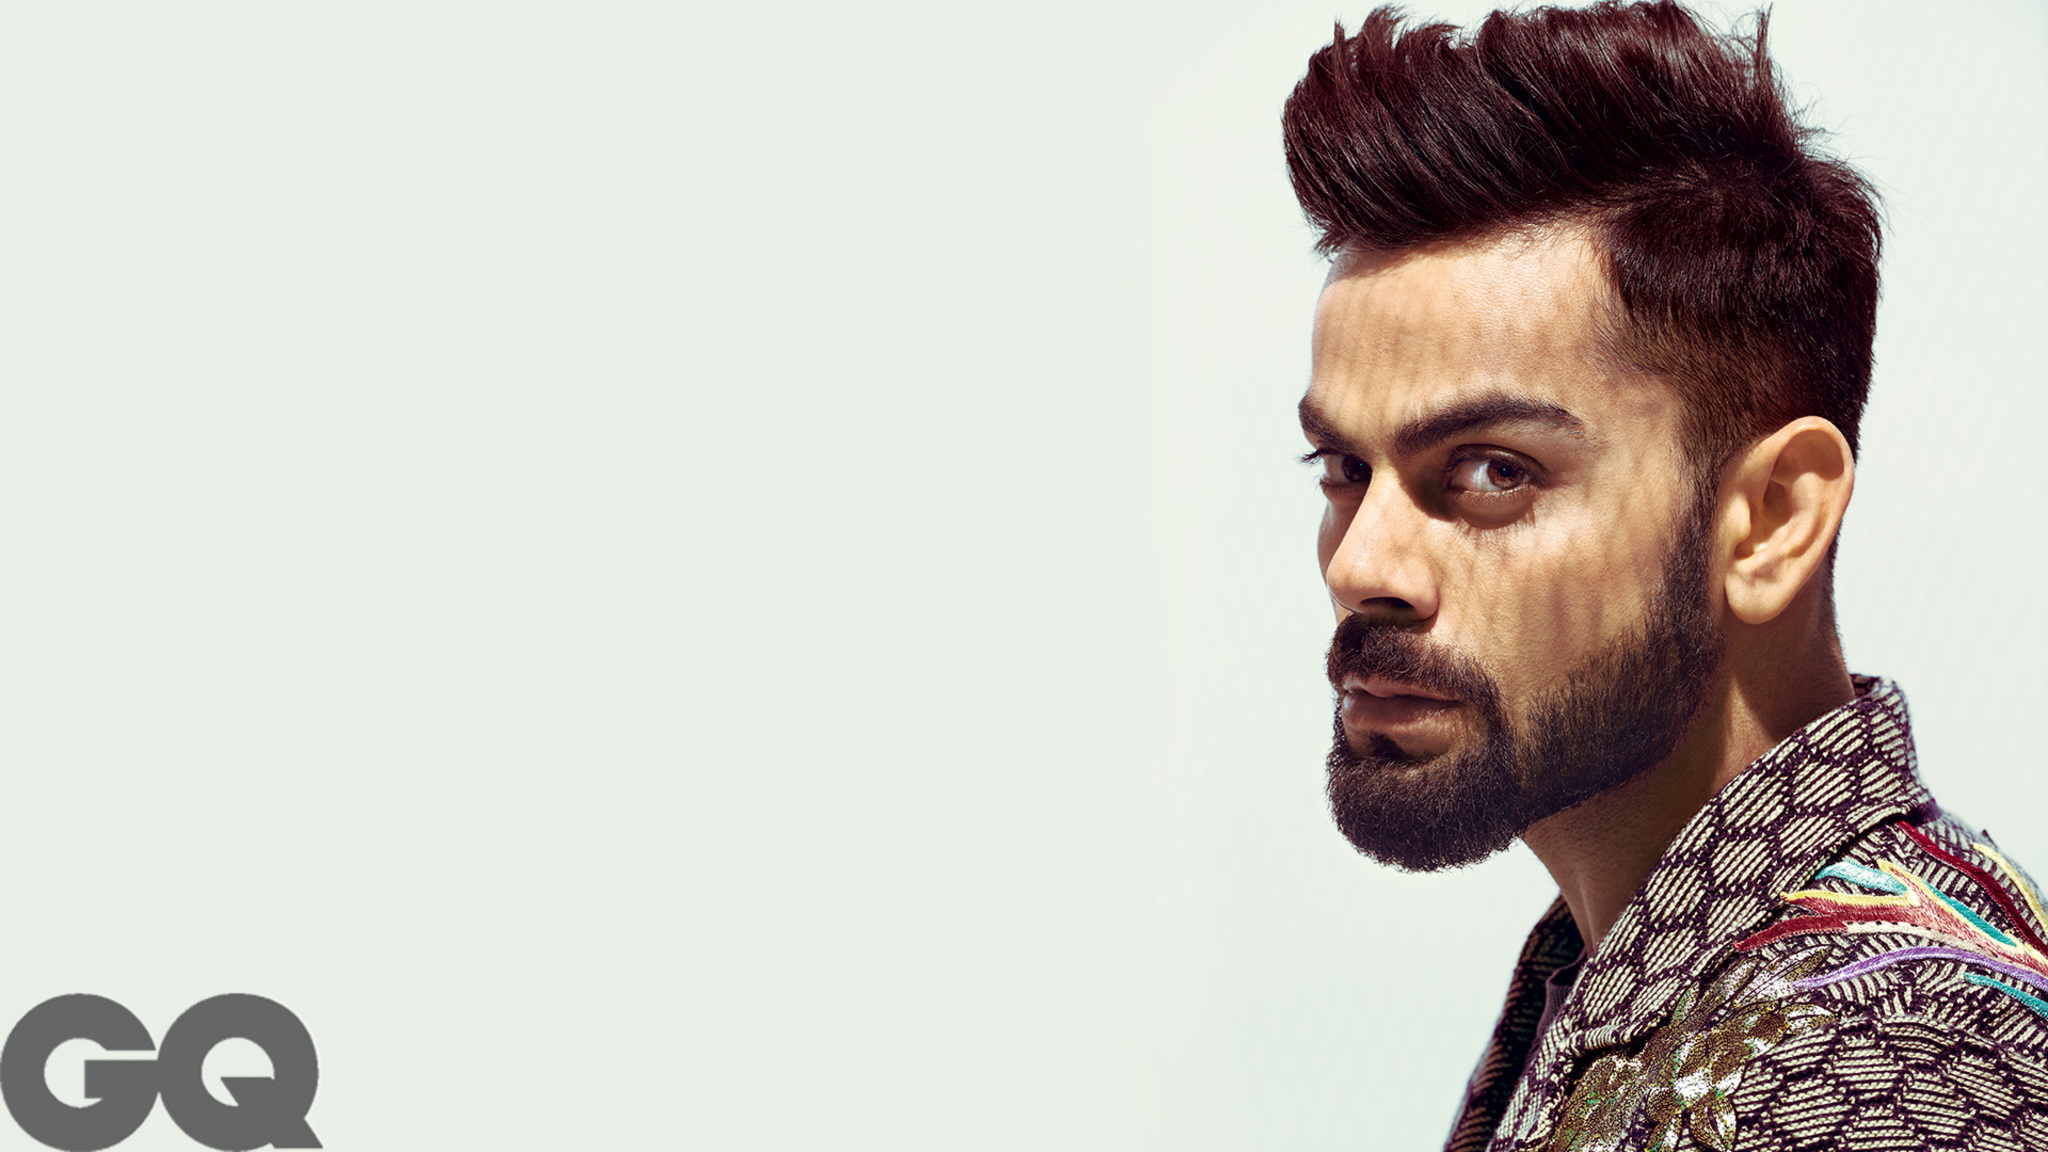 2048x1152 Virat Kohli Gq 2048x1152 Resolution Hd 4k Wallpapers